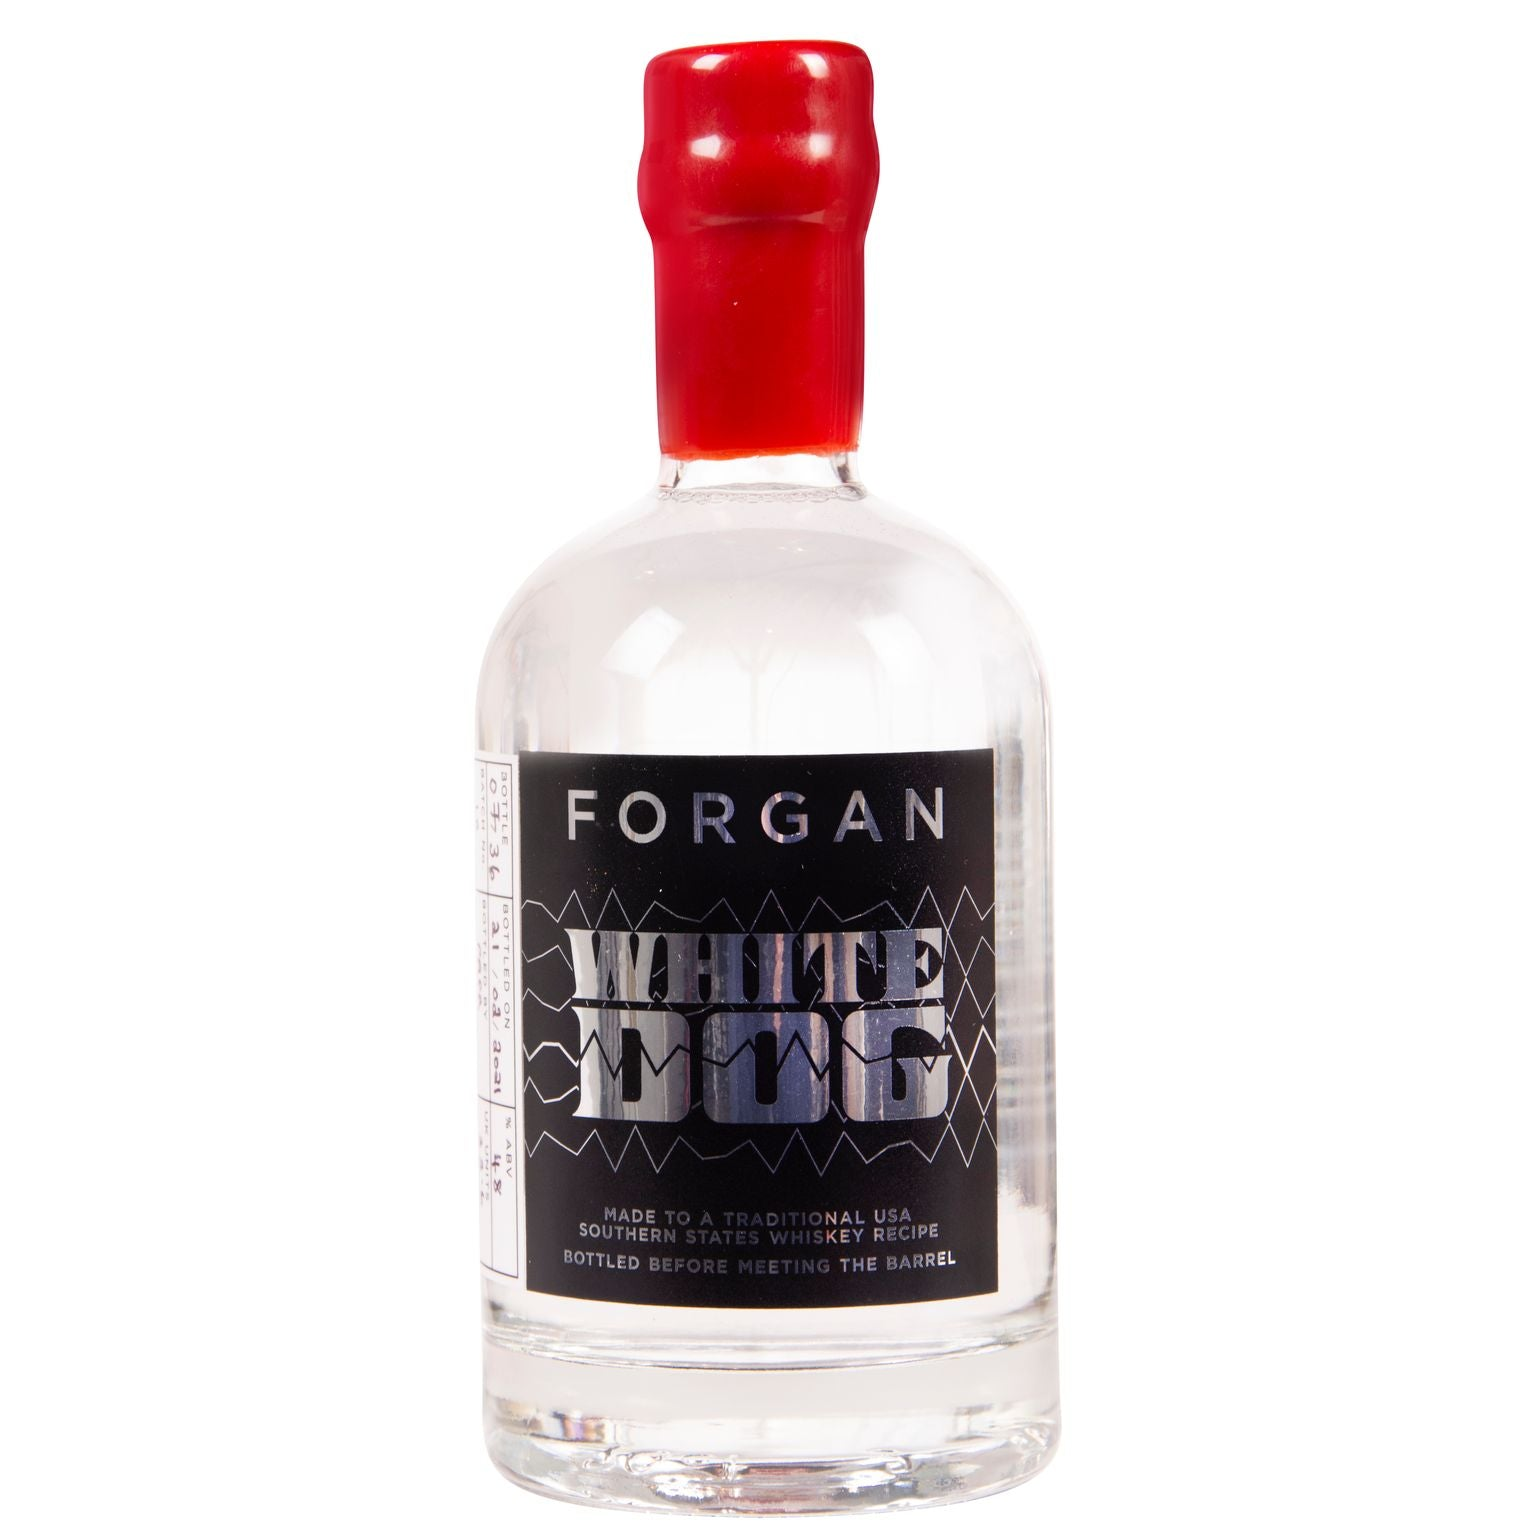 Forgan White Dog - Unaged Single Grain Corn Spirit Batch 10 - 70cl bottle 48%ABV